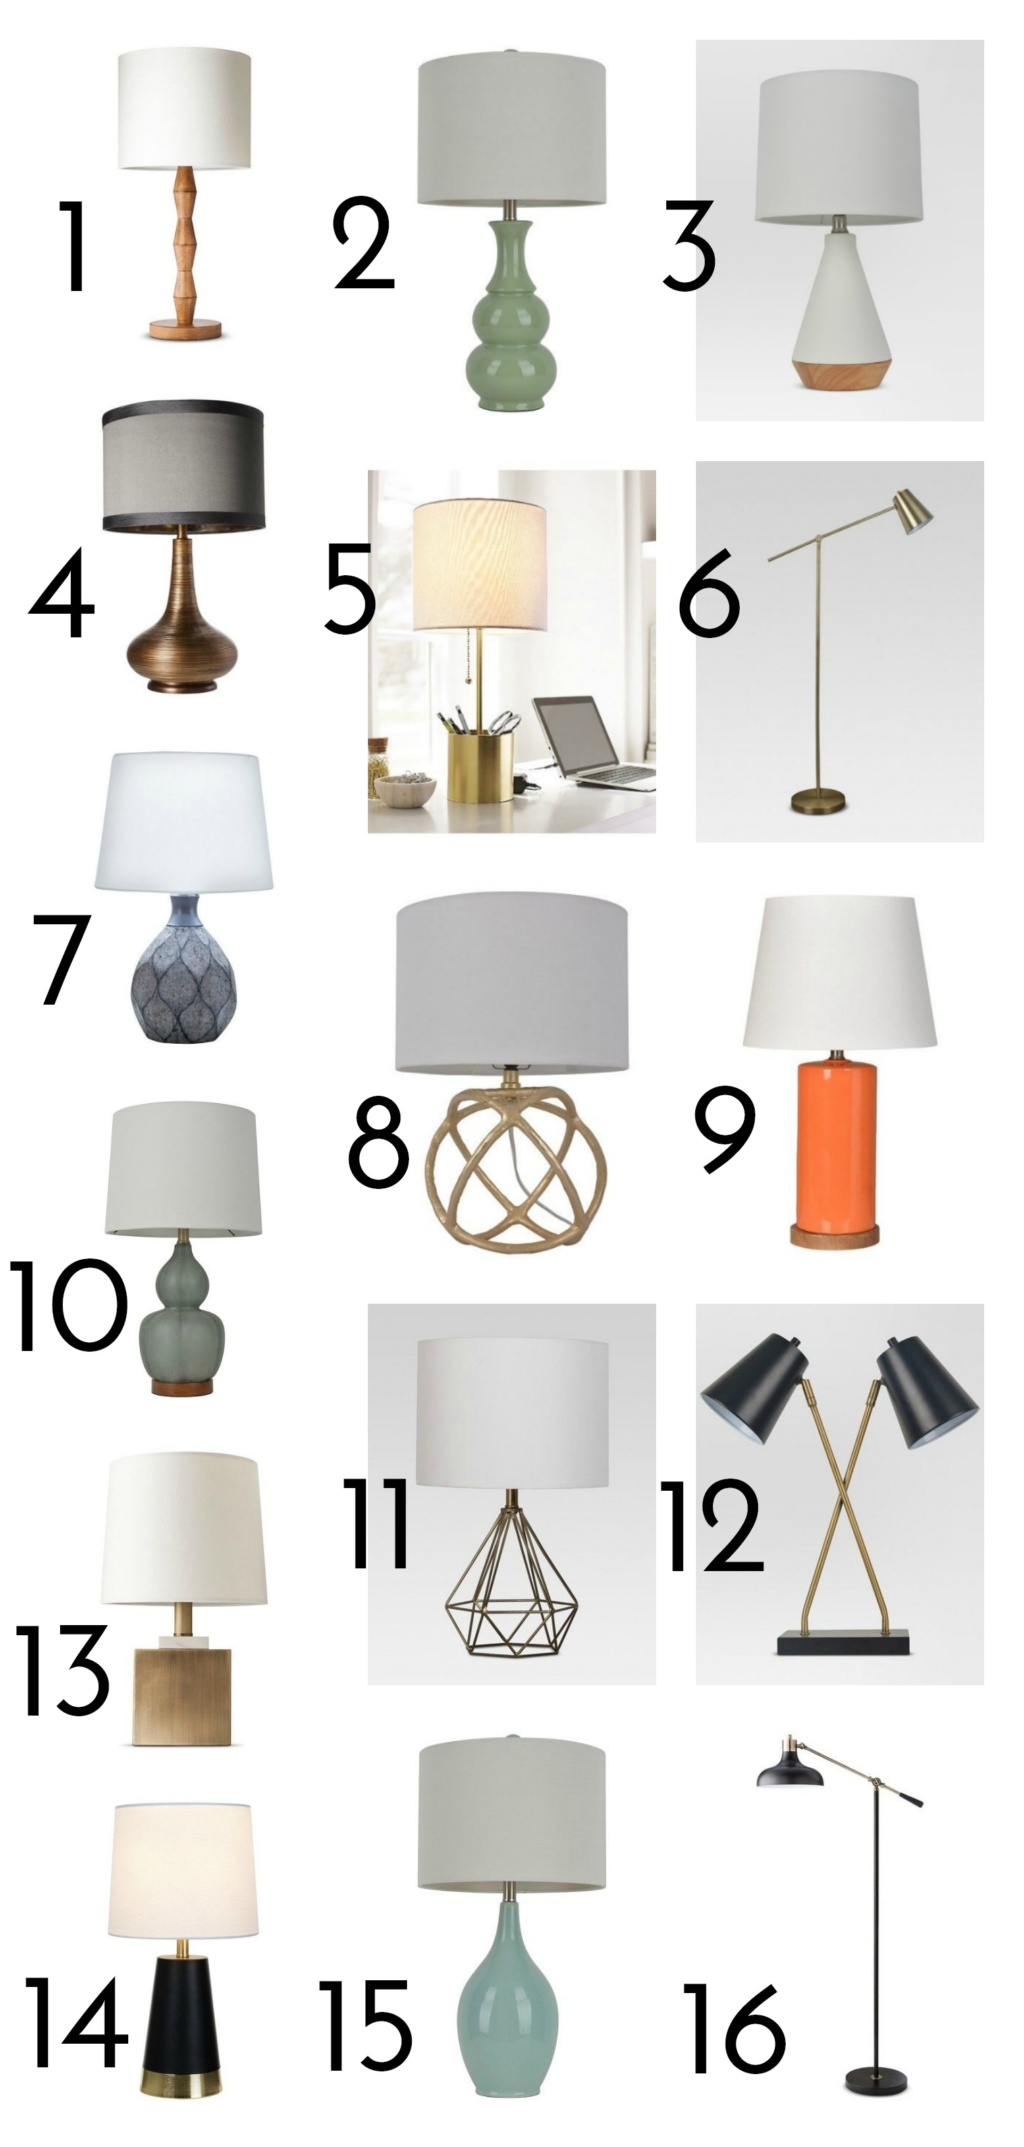 fixture over table your lamps chrome picture bih floor henderson with under favorite photo how fantastic space standing roundup ceiling lights fun cool lov lamp bedside grey night stand emily gallery light our probably of hanging